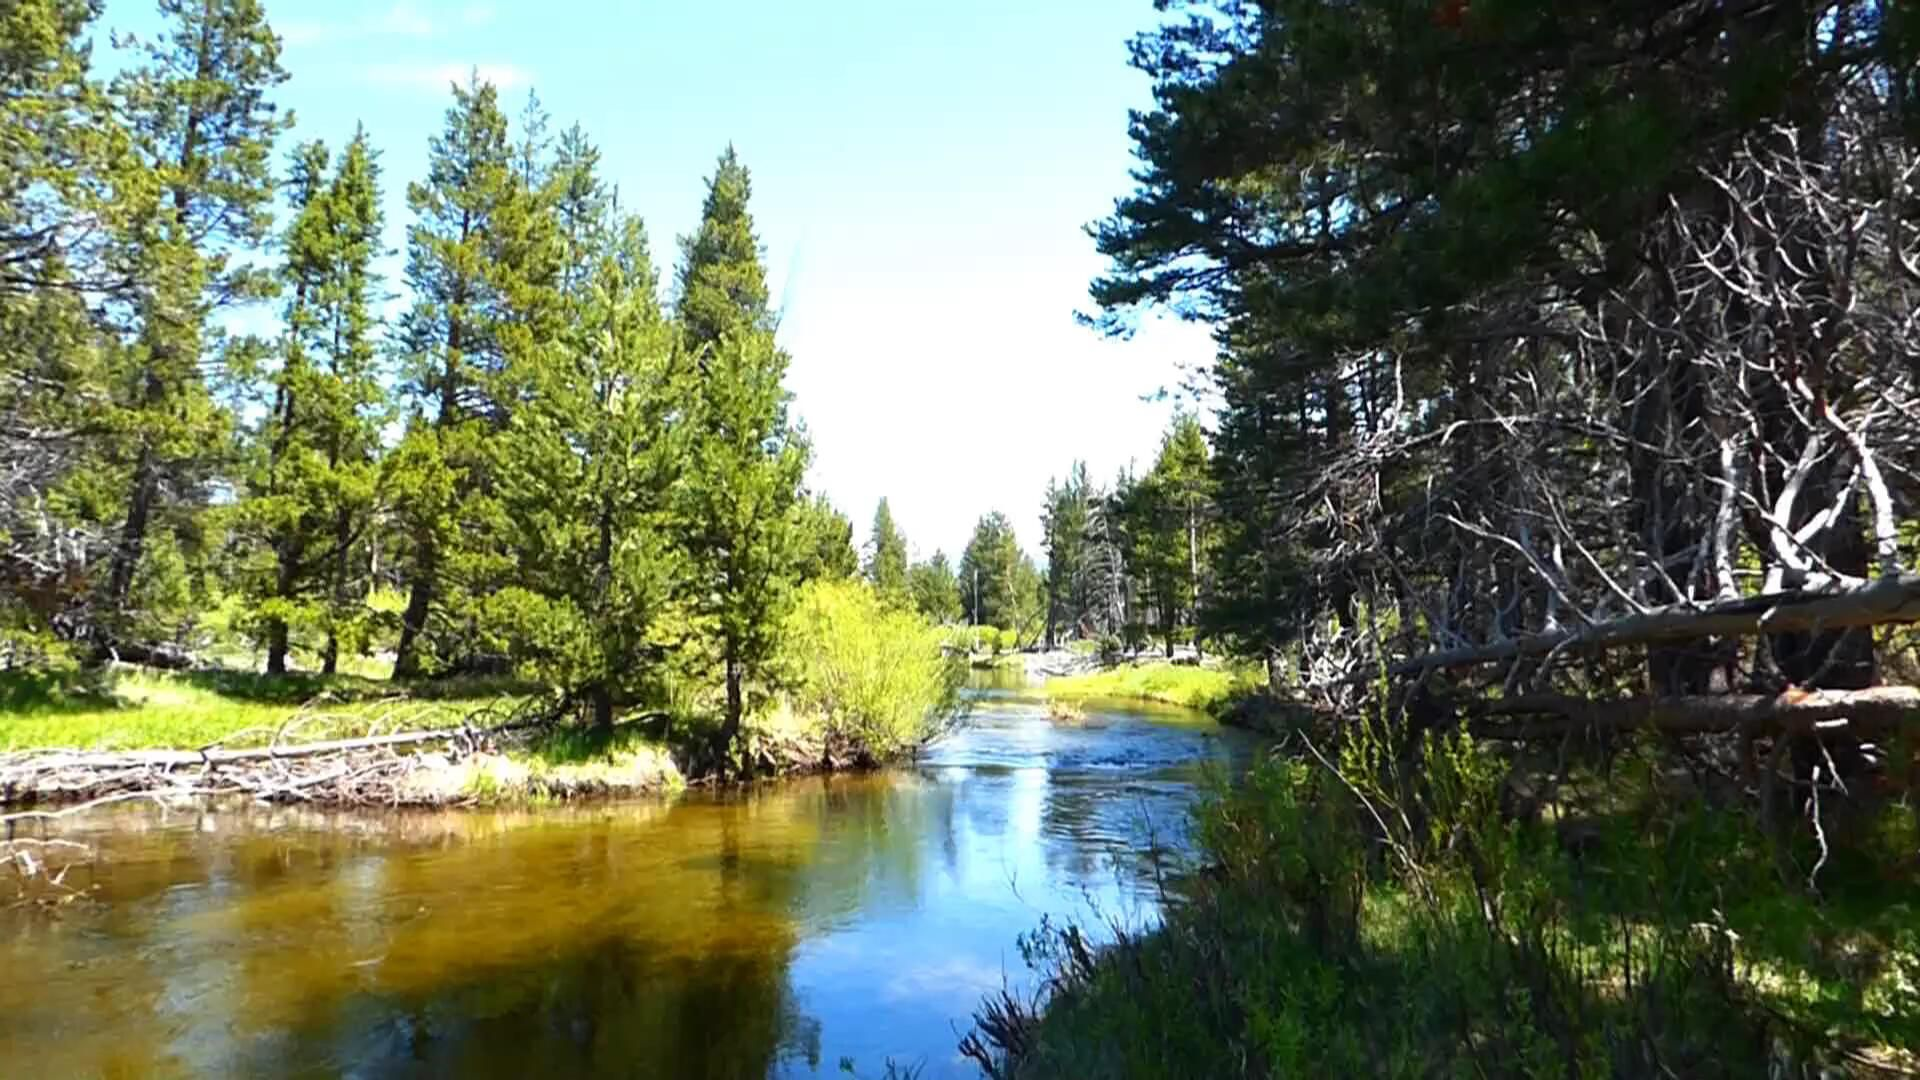 The Truckee River Flows Through The Lake Tahoe Area Then To The